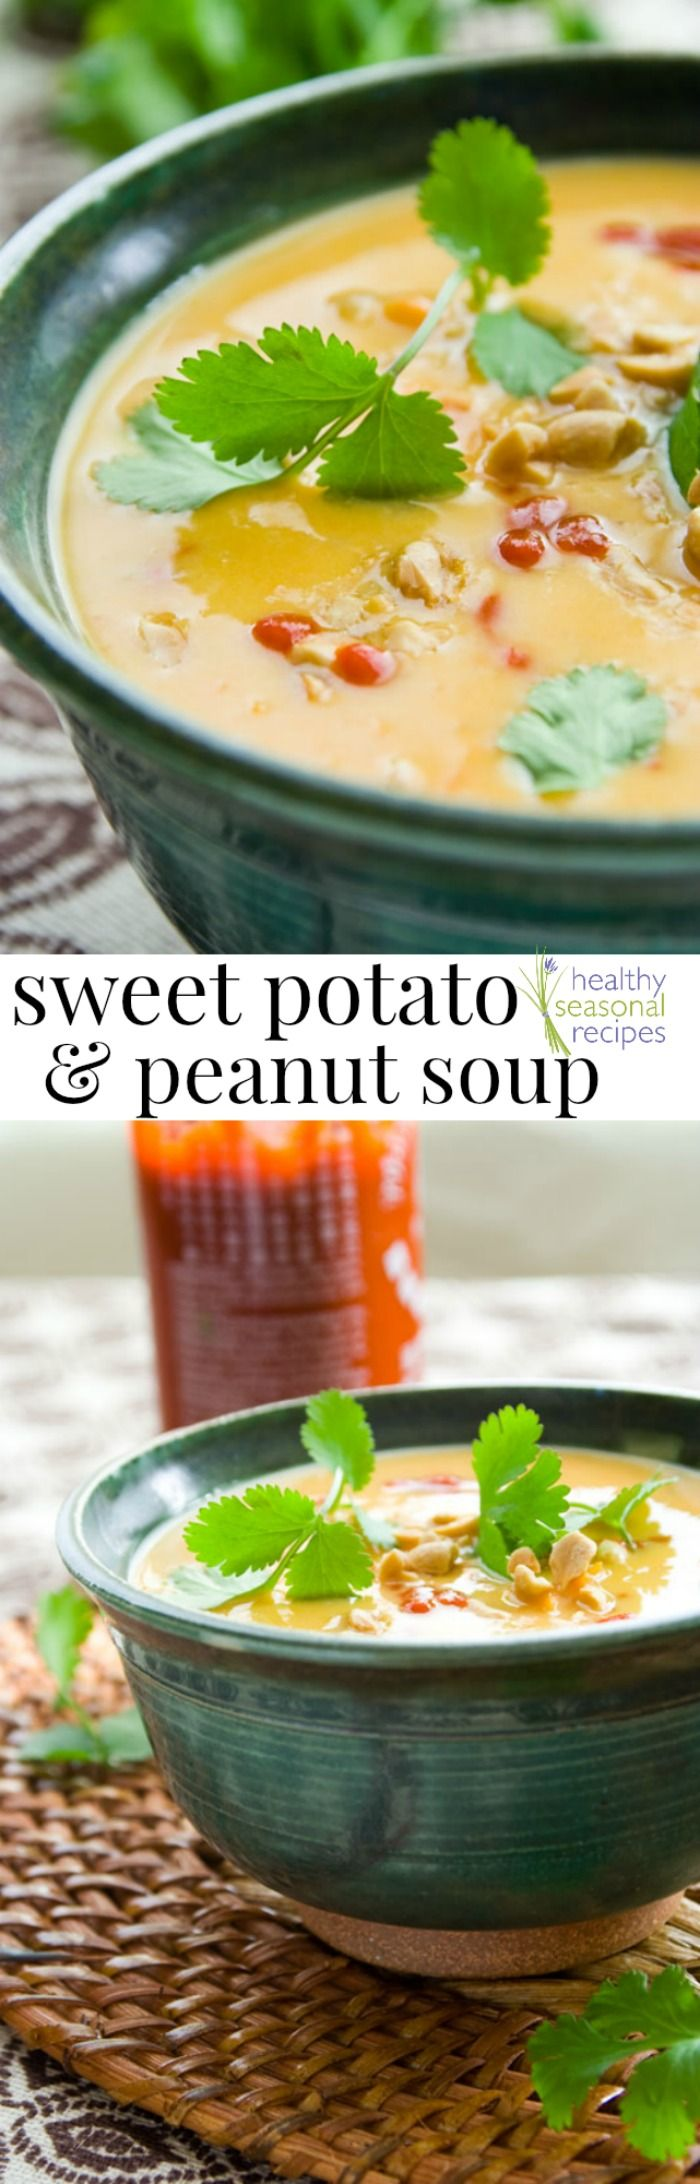 Blog post at Healthy Seasonal Recipes :  //  Healthy and delicious sweet potato soup recipe with peanuts and coconut. Gluten-free and dairy free.  There are times in recipe deve[..]